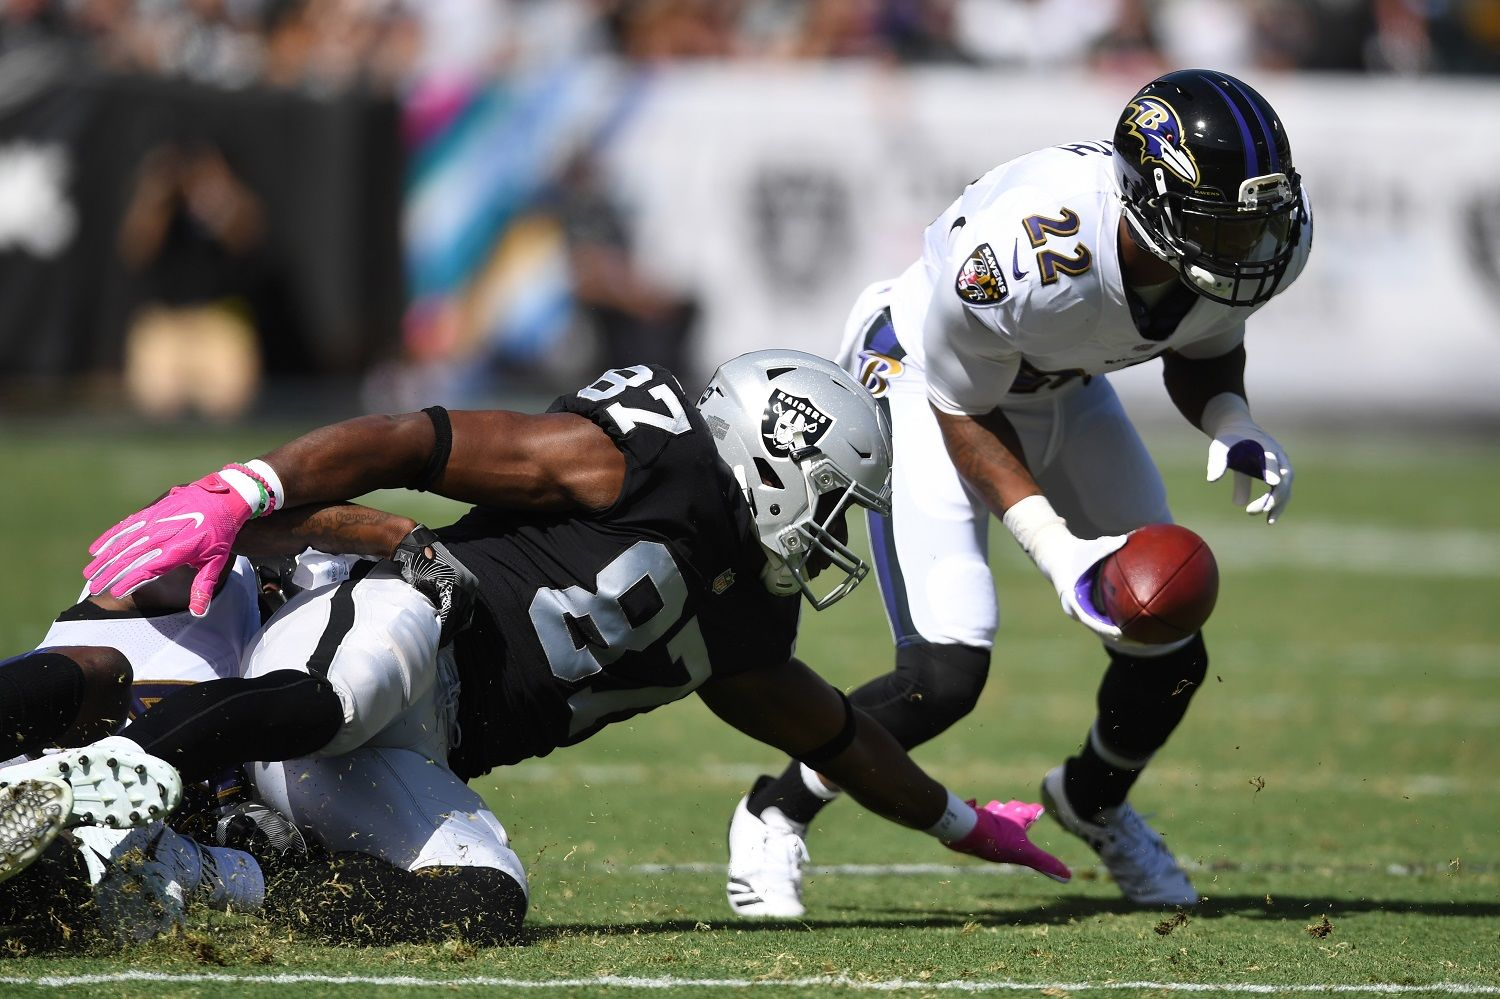 OAKLAND, CA - OCTOBER 08:  Jimmy Smith #22 of the Baltimore Ravens returns a recovered fumble by Jared Cook #87 of the Oakland Raiders for a touchdown during their NFL game at Oakland-Alameda County Coliseum on October 8, 2017 in Oakland, California.  (Photo by Thearon W. Henderson/Getty Images)